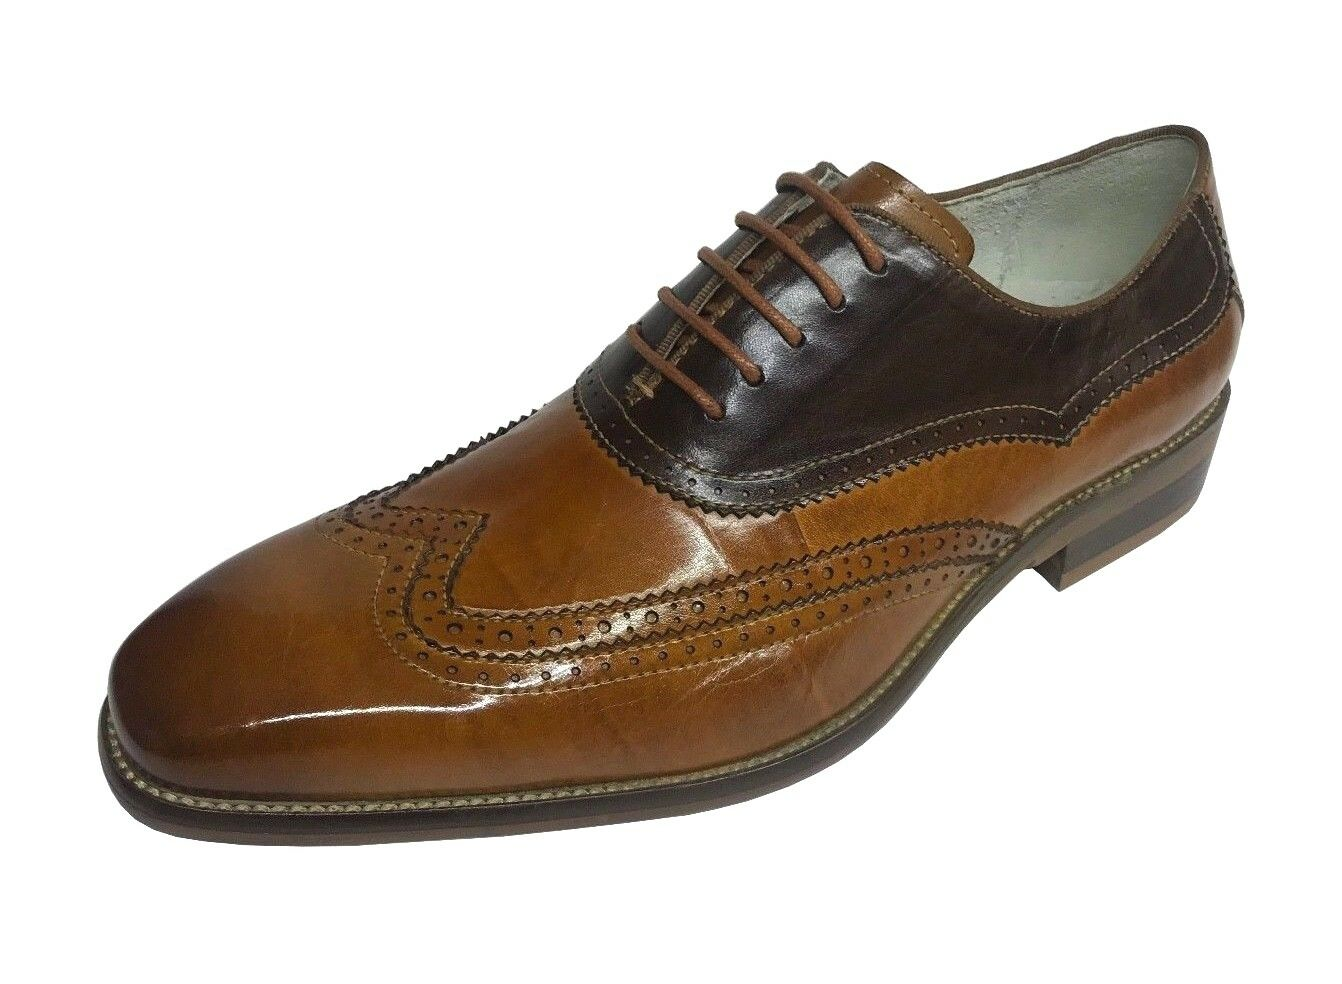 Giovanni Men's Oxford Tan Brown Leather Wing Tip Dress shoes Cyprus